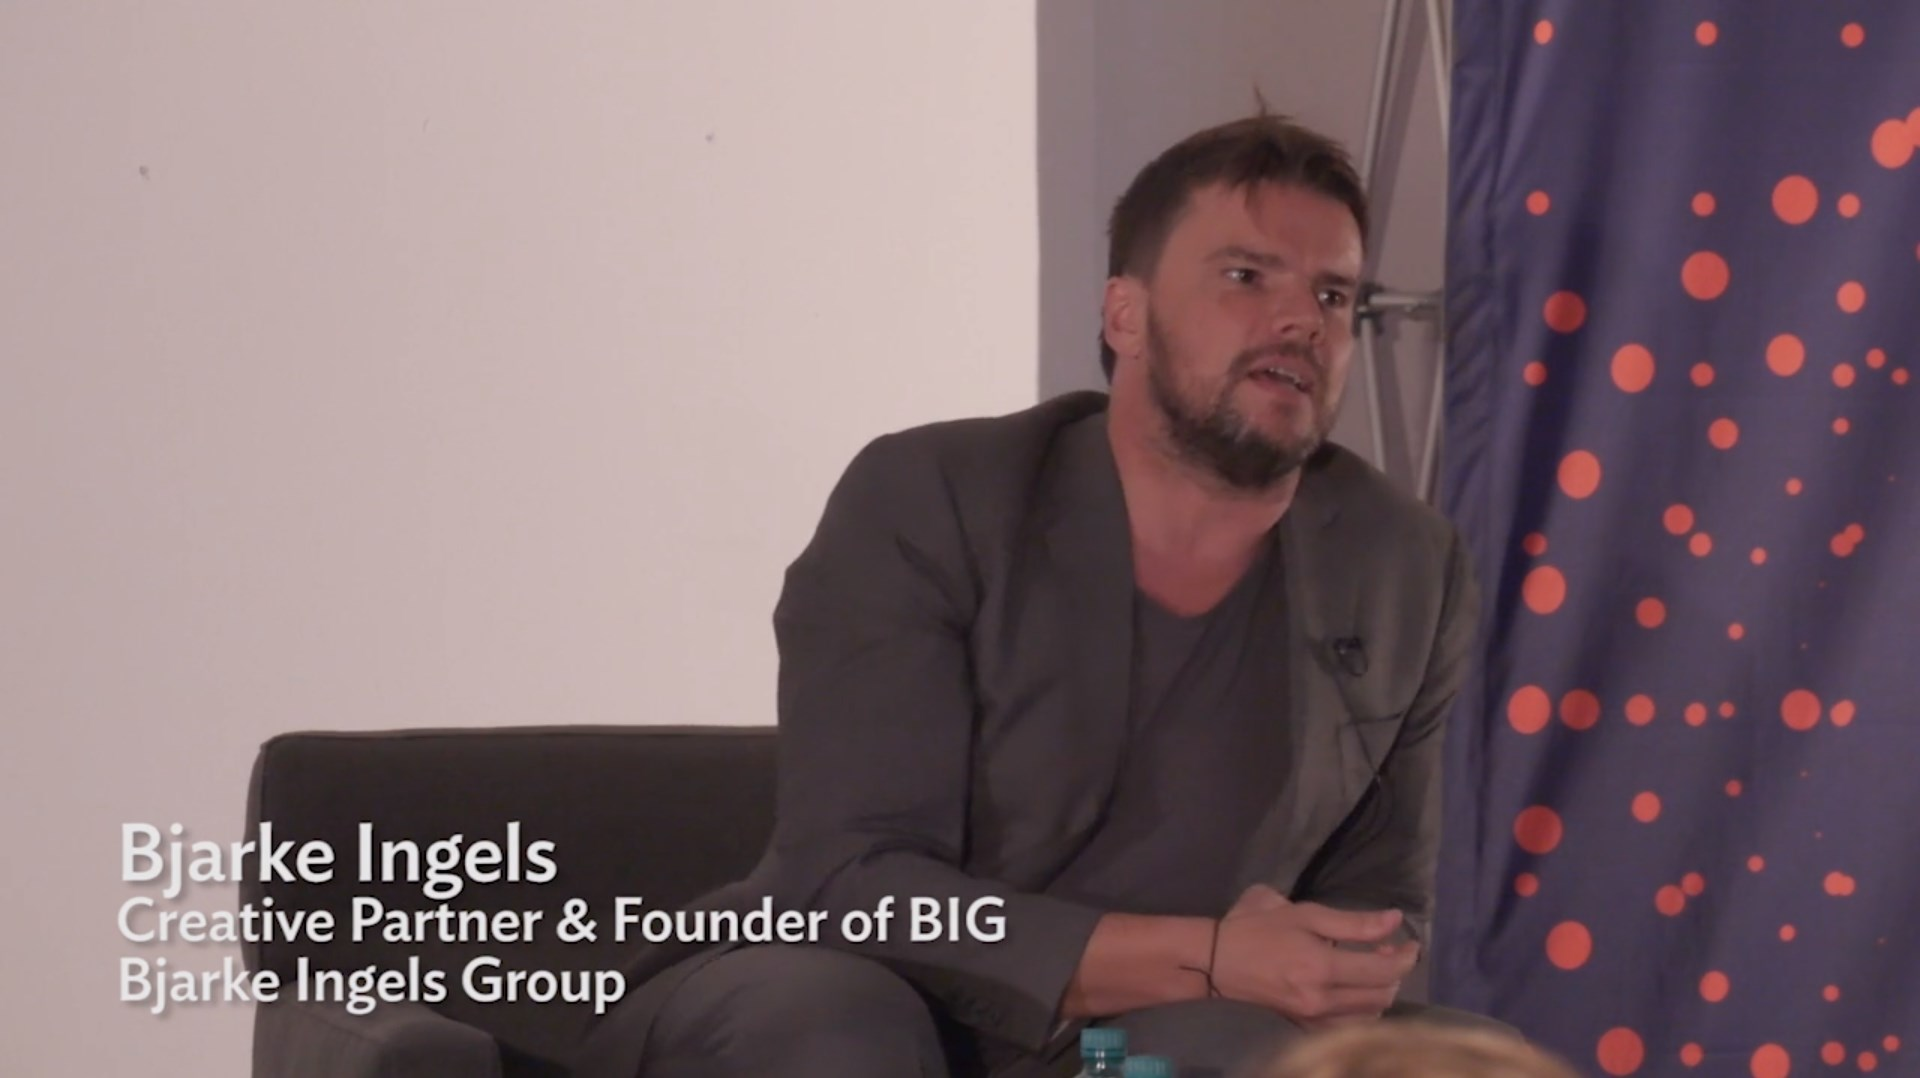 Short Video: Bjarke Ingels in his post-lecture Q & A_Video # 2